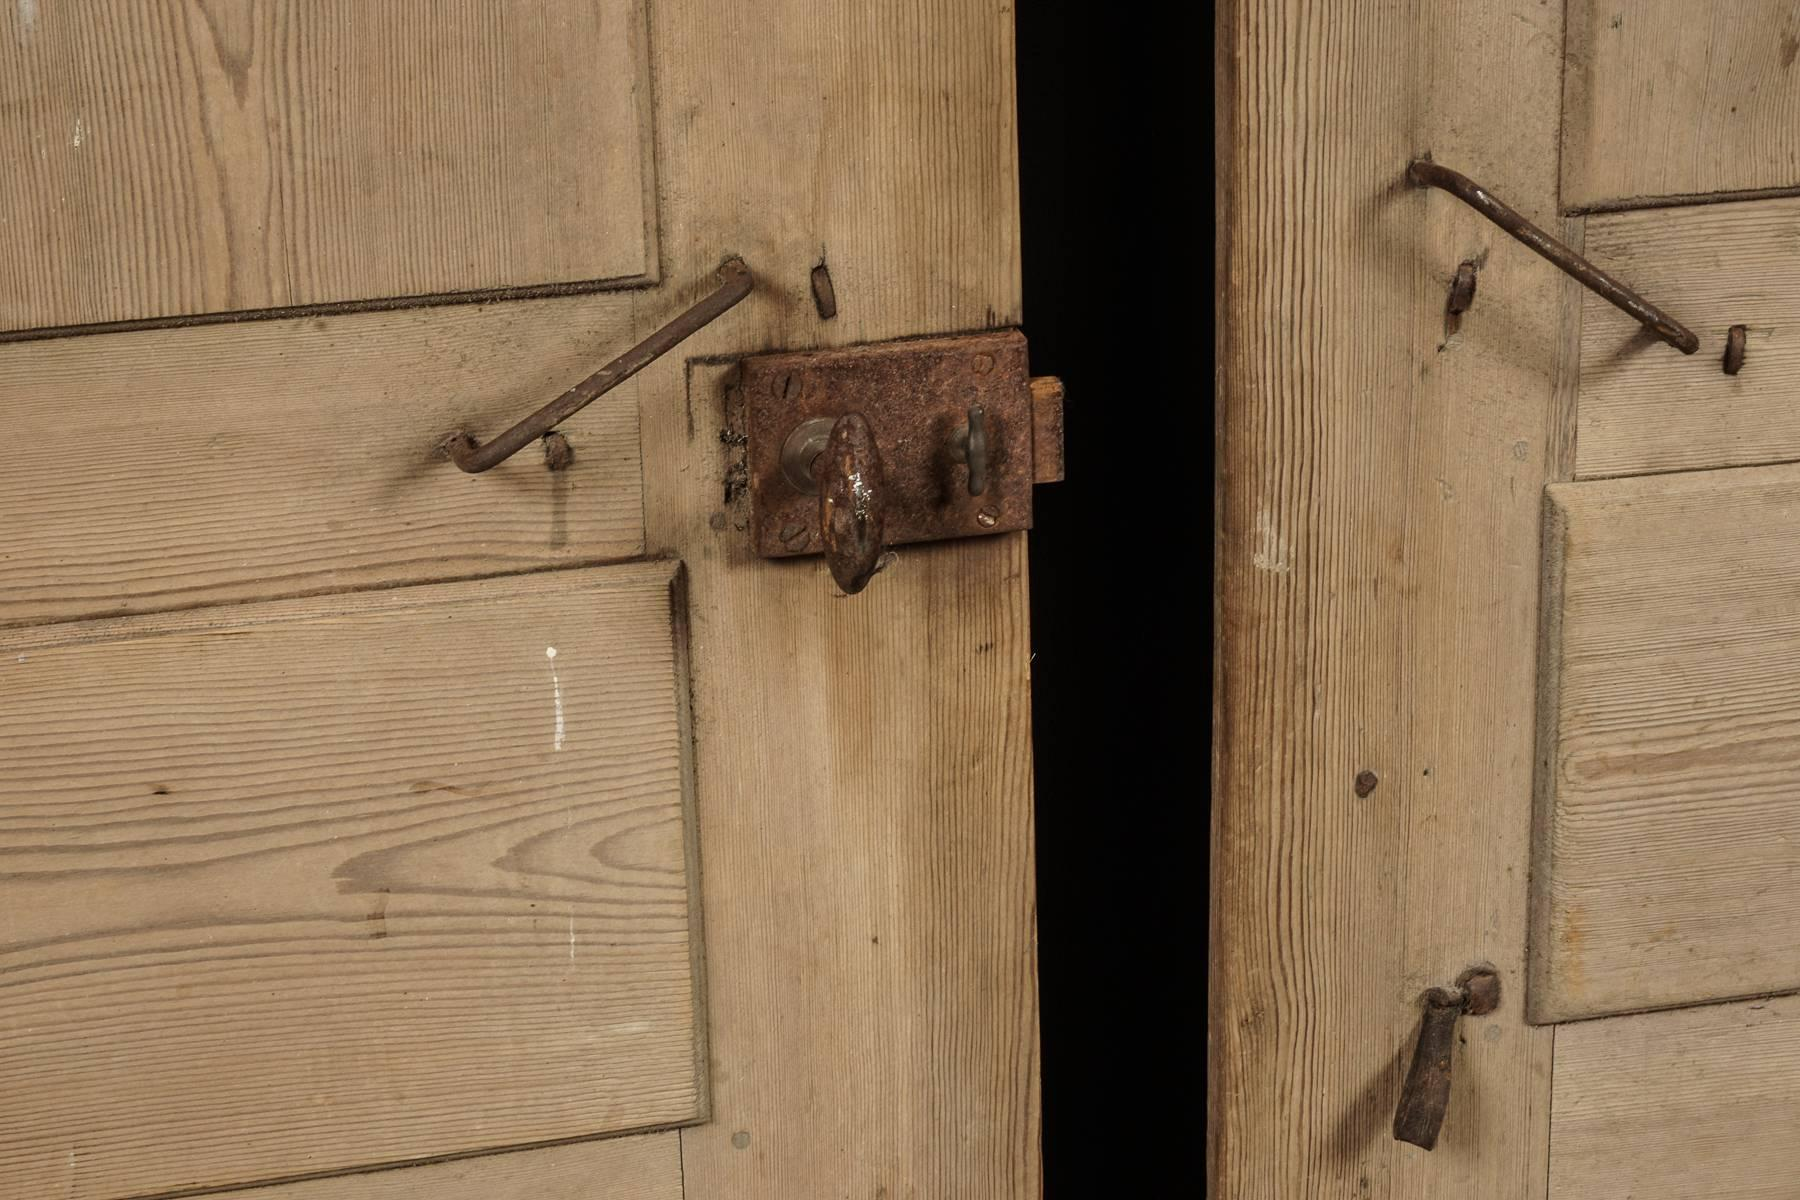 Pair of Primitive Doors from Sweden circa 1820 For Sale 1 & Pair of Primitive Doors from Sweden circa 1820 at 1stdibs